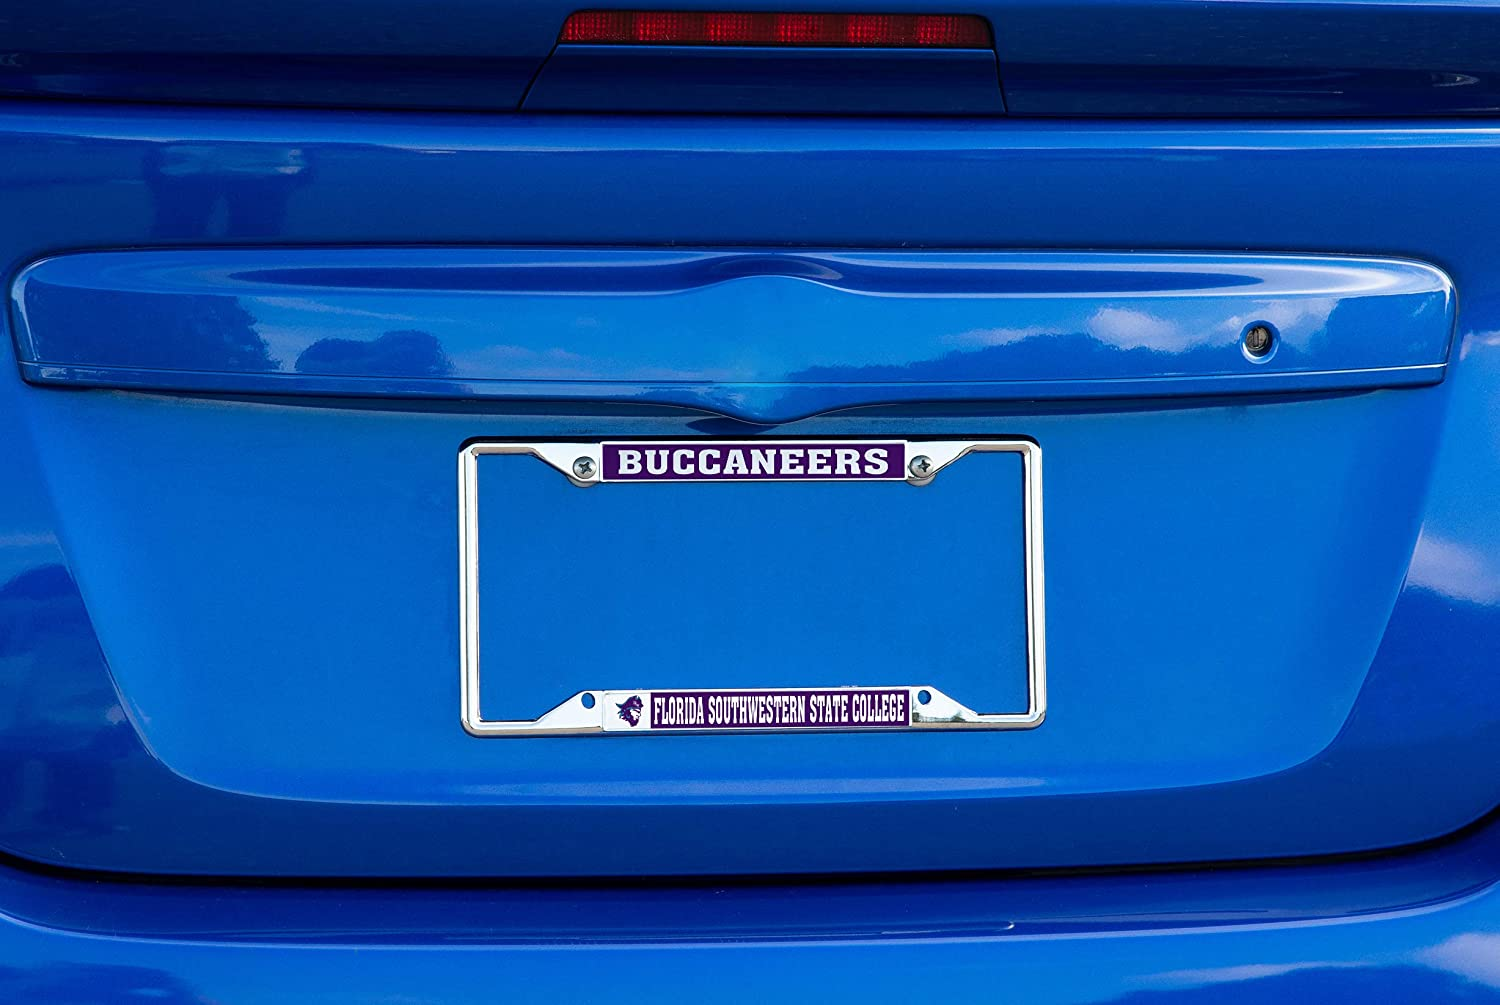 Desert Cactus Florida Southwestern State College The Buccaneers NCAA Metal License Plate Frame for Front or Back of Car Officially Licensed Mascot